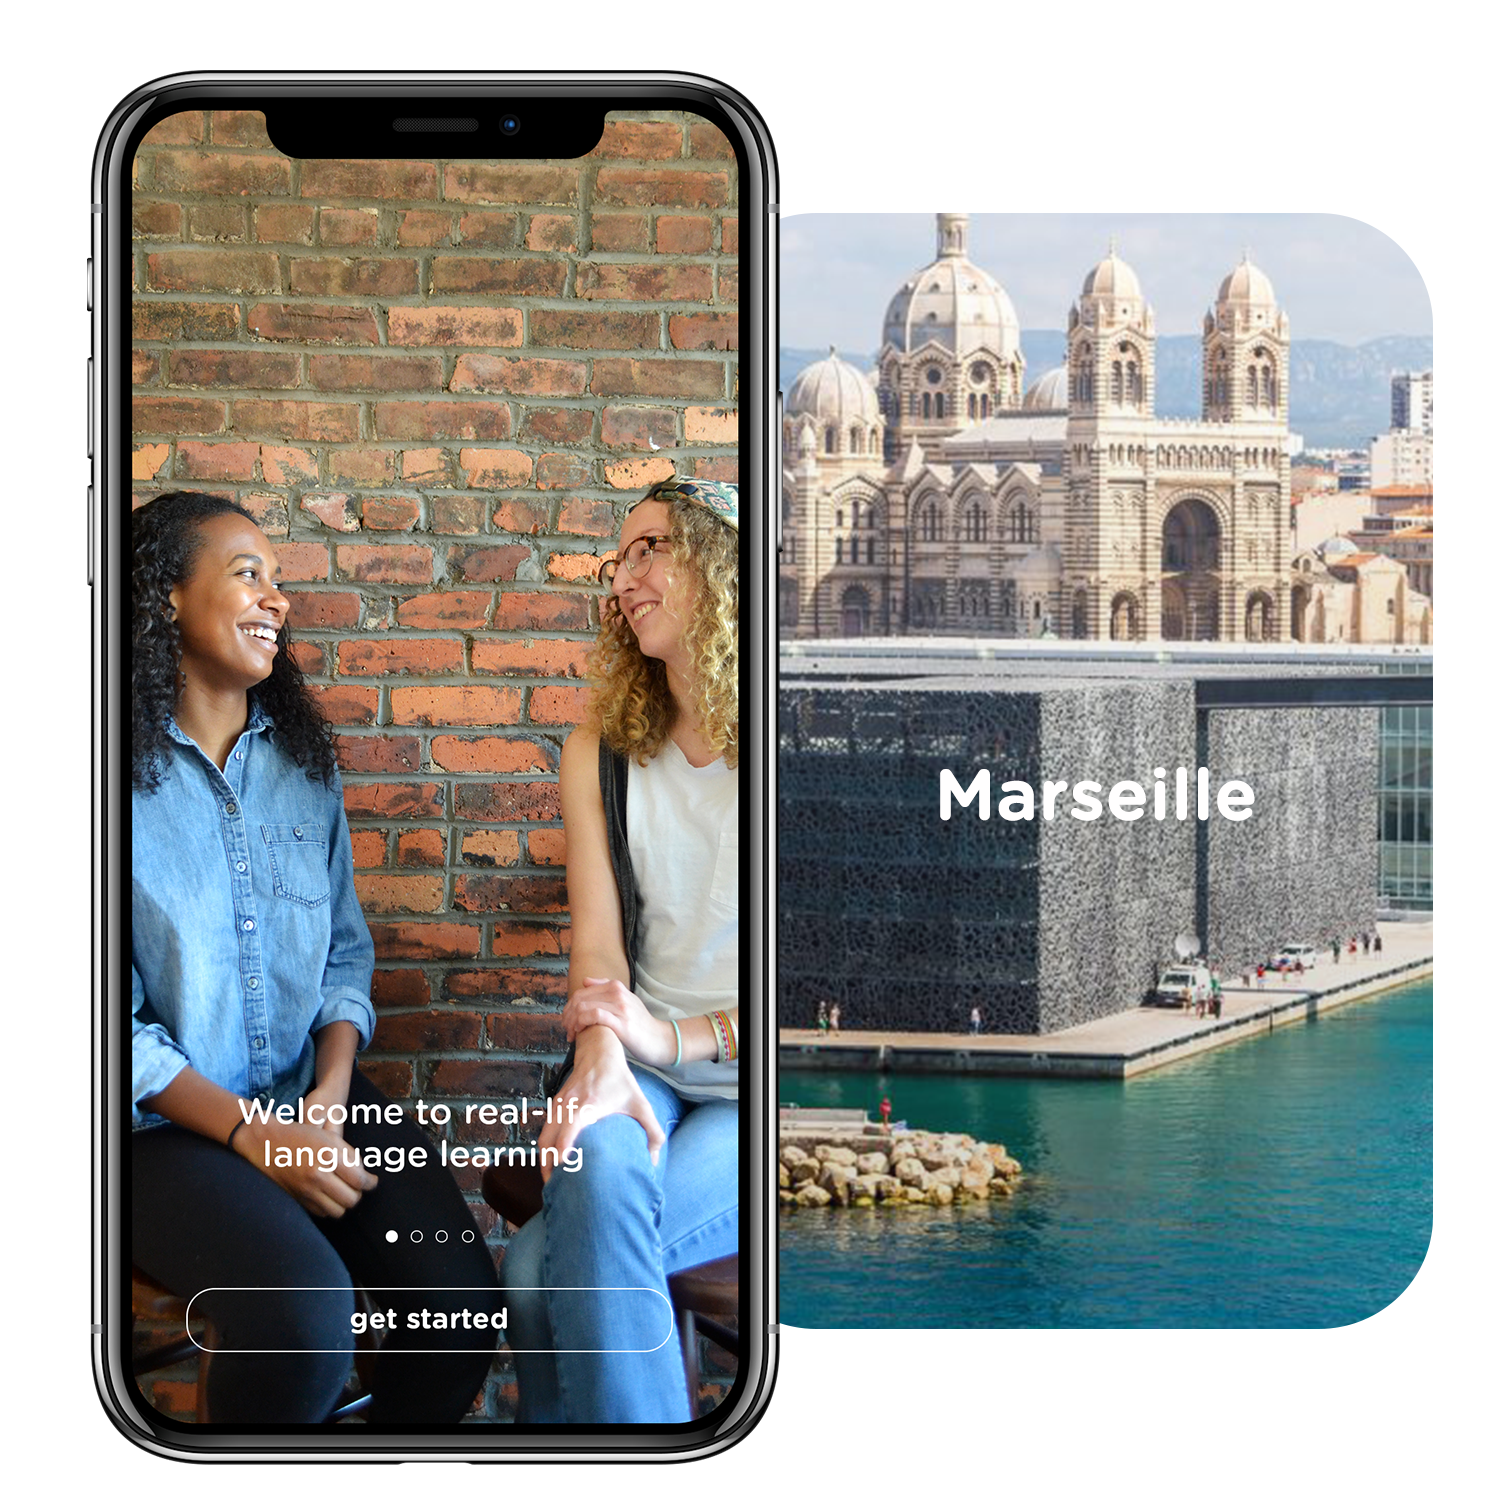 barden-language-exchange-app-inapp-design-marseille-language-exchange